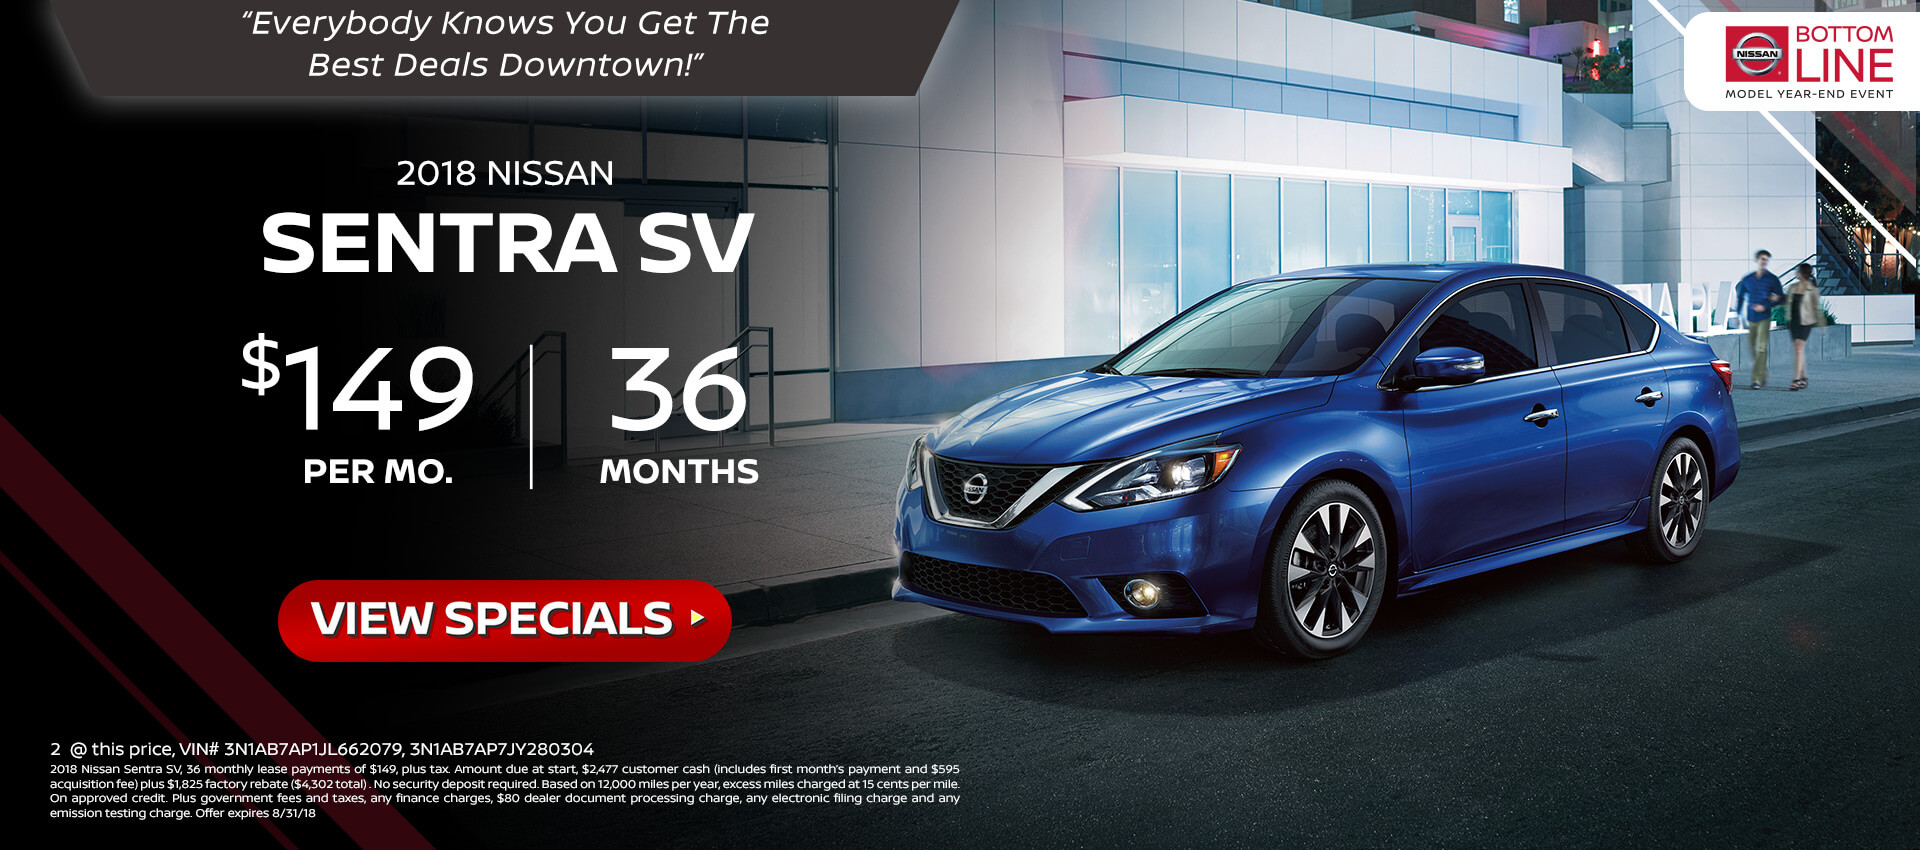 Nissan Dealer - Los Angeles, Hollywood, Pasadena, Glendale | Nissan ...